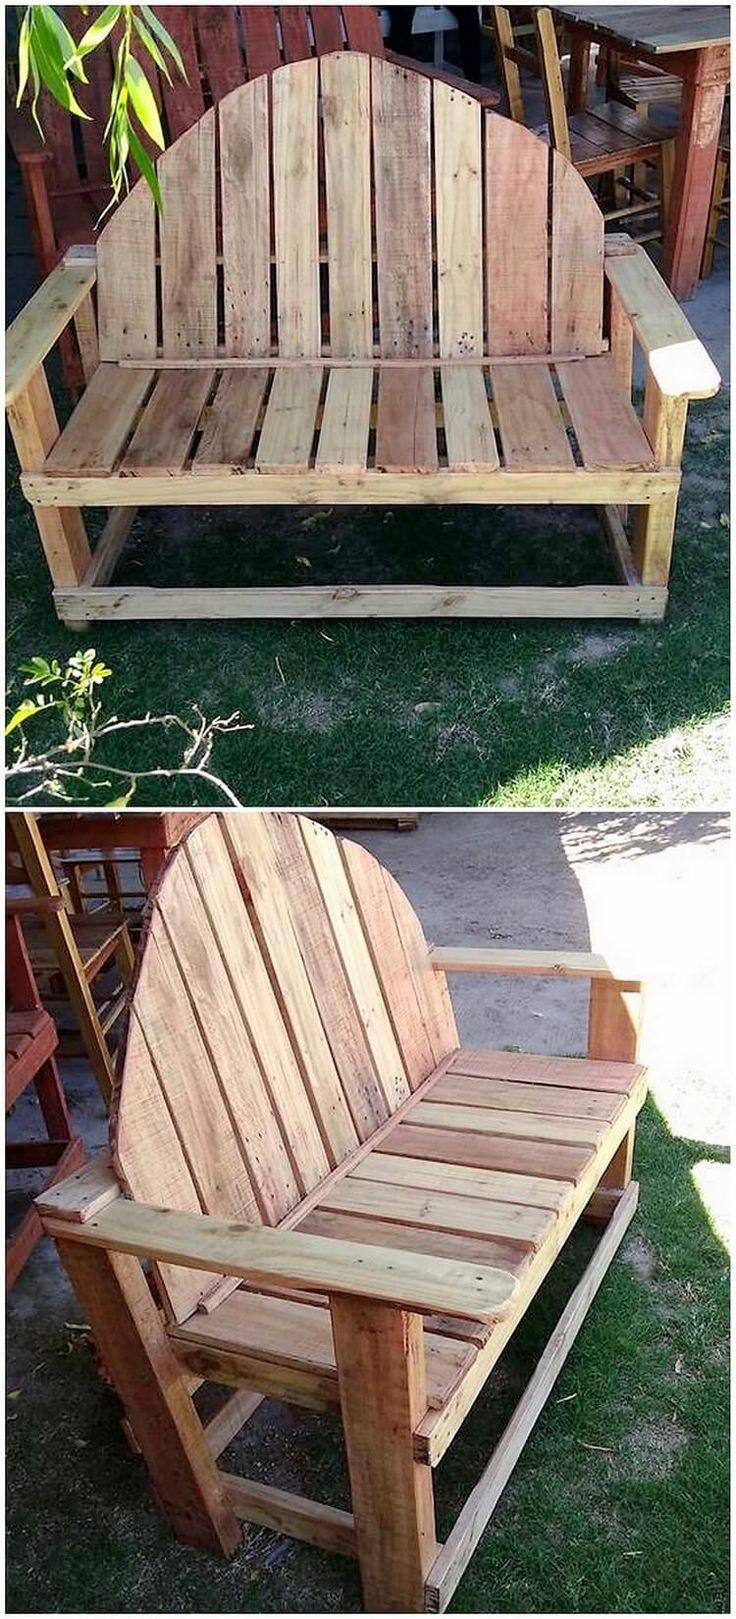 Square in shape, moderate with the size, and low in weight, this wood pallet garden bench creativity is outstanding looking. The entire view of the bench will highlight the miniature coverage of the wood pallet being added all around it. It is simple in designing coverage. #GardenBench